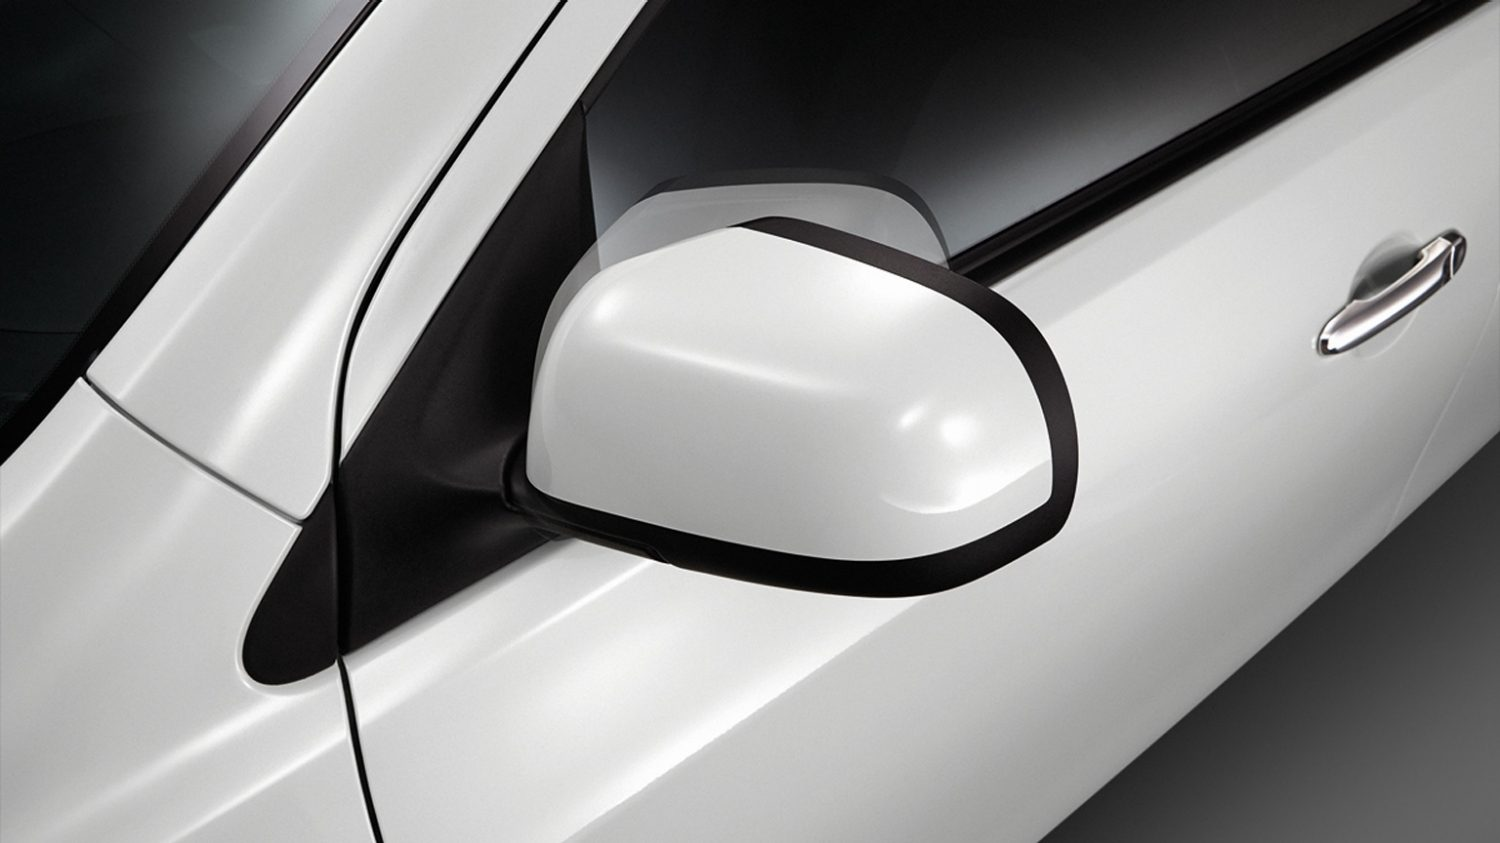 Electronic door mirrors